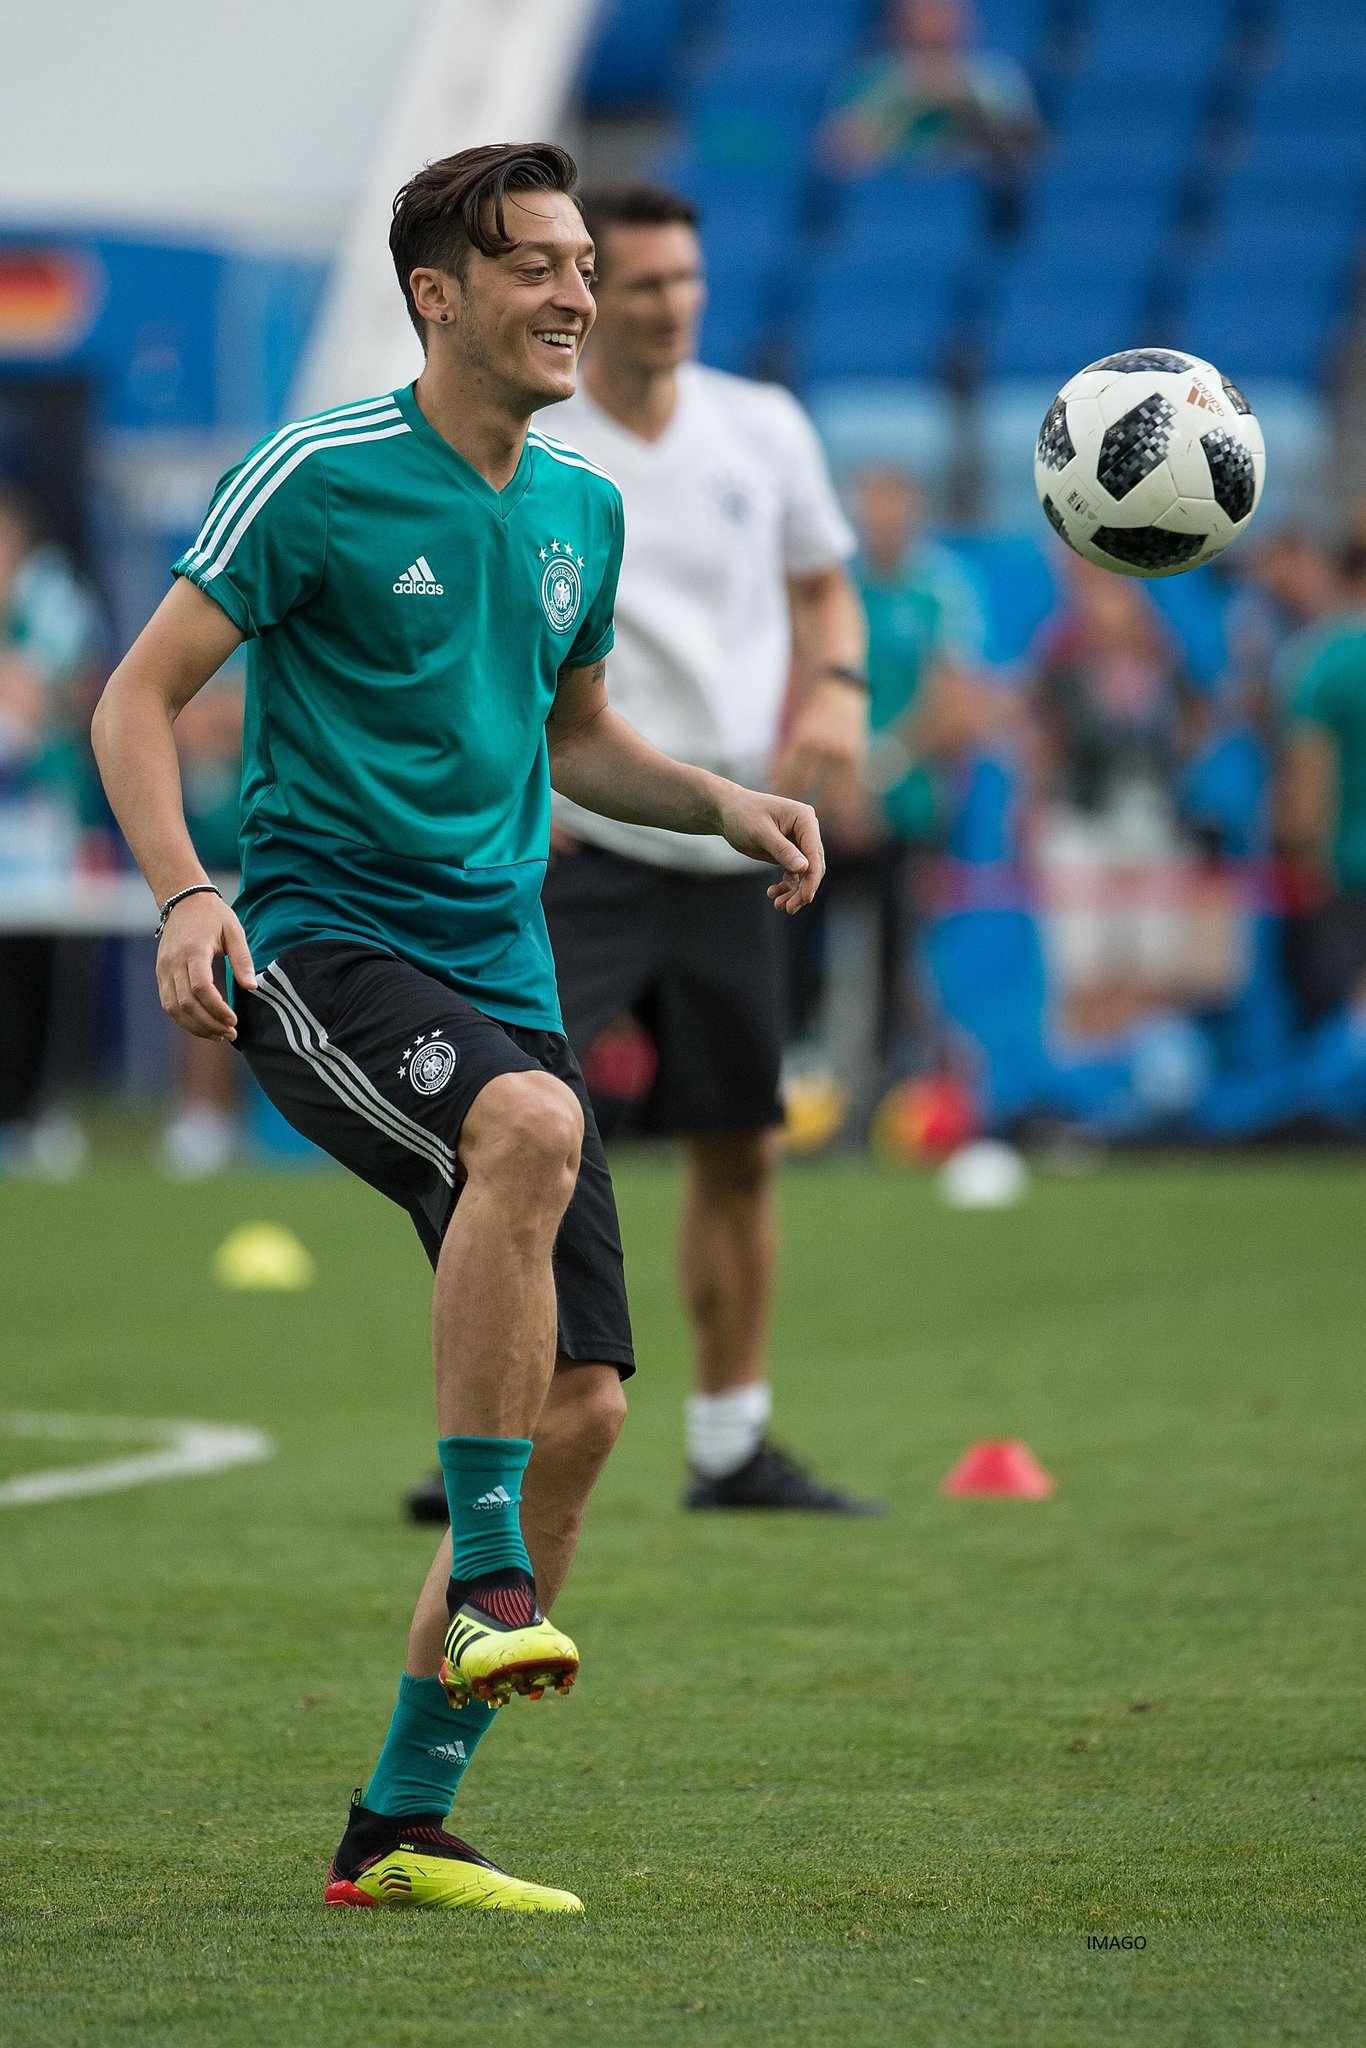 Big game tomorrow to put things right. ��⚽���� #M1Ö #Worldcup #GERSWE #DieMannschaft #GER #BestNeverRest https://t.co/8TxboIjGlP